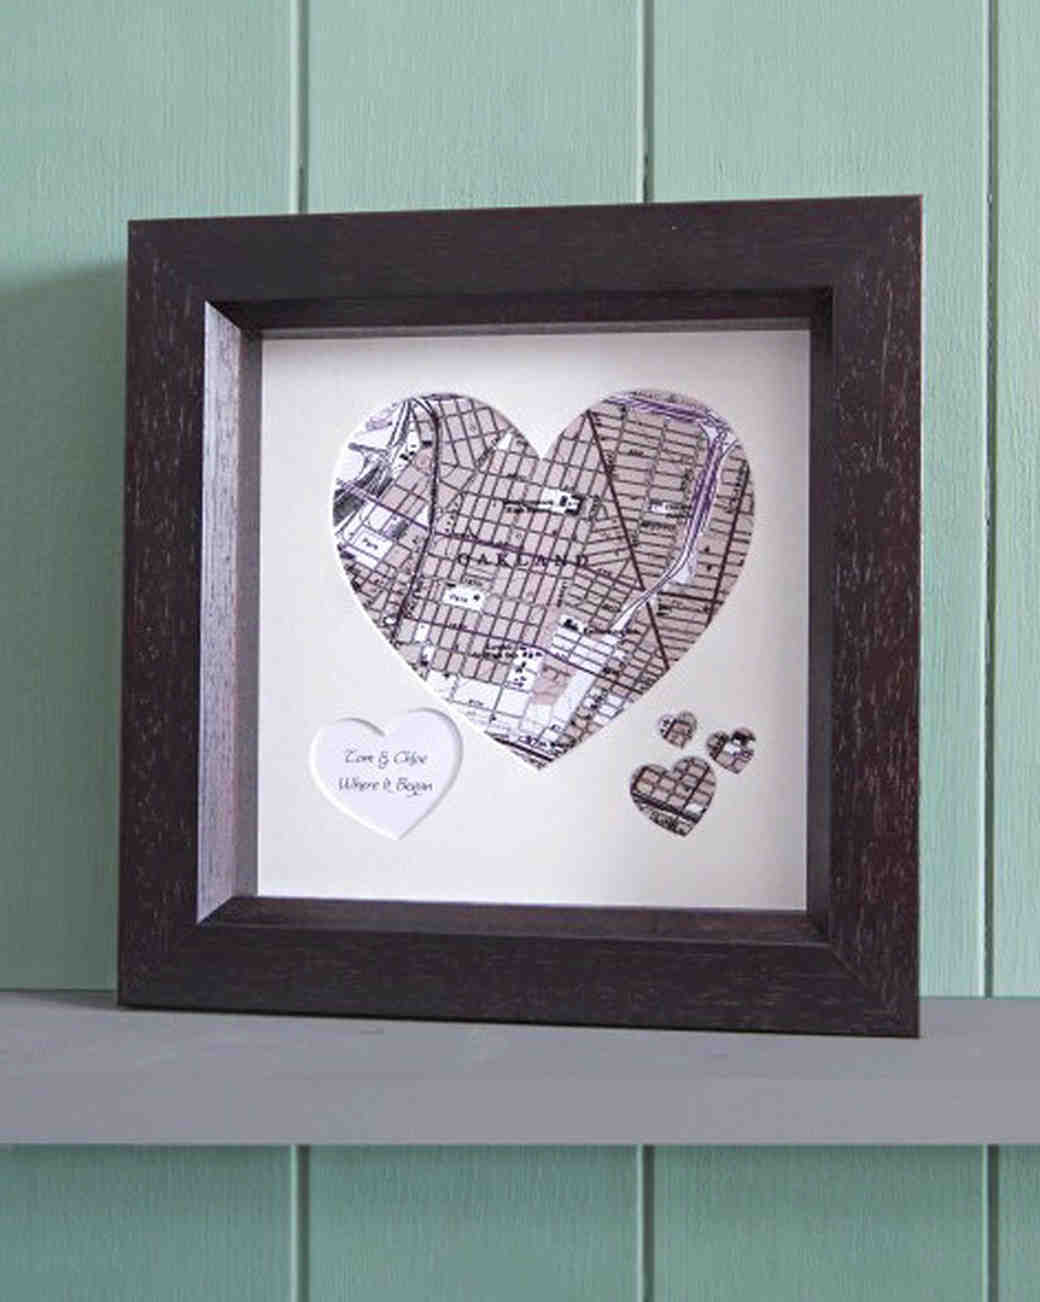 personalized heart-shaped frame with map